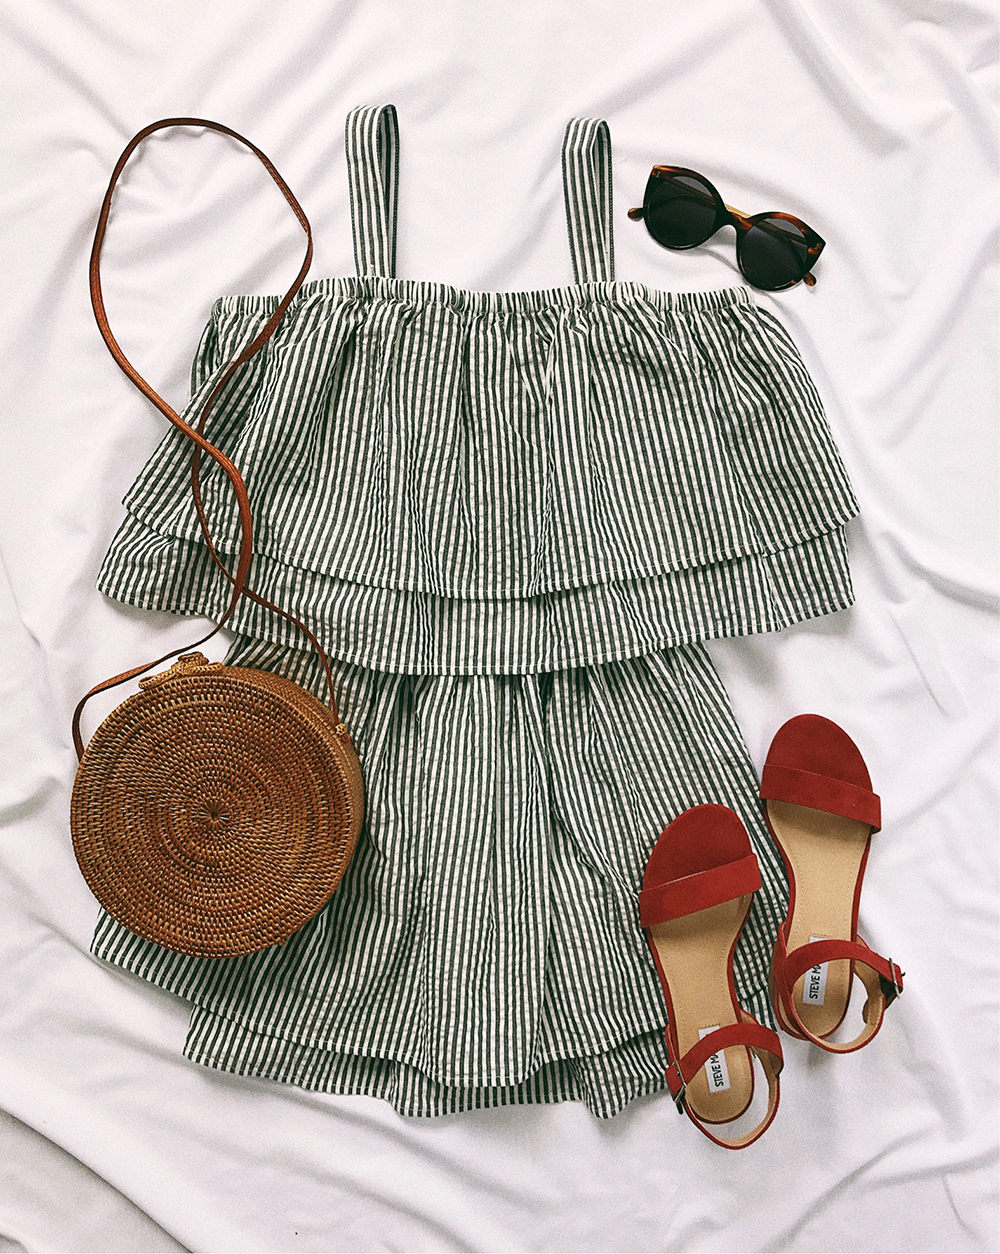 livvyland-blog-olivia-watson-instagram-roundup-june-summer-style-tula-rosa-striped-dress-round-straw-handbag